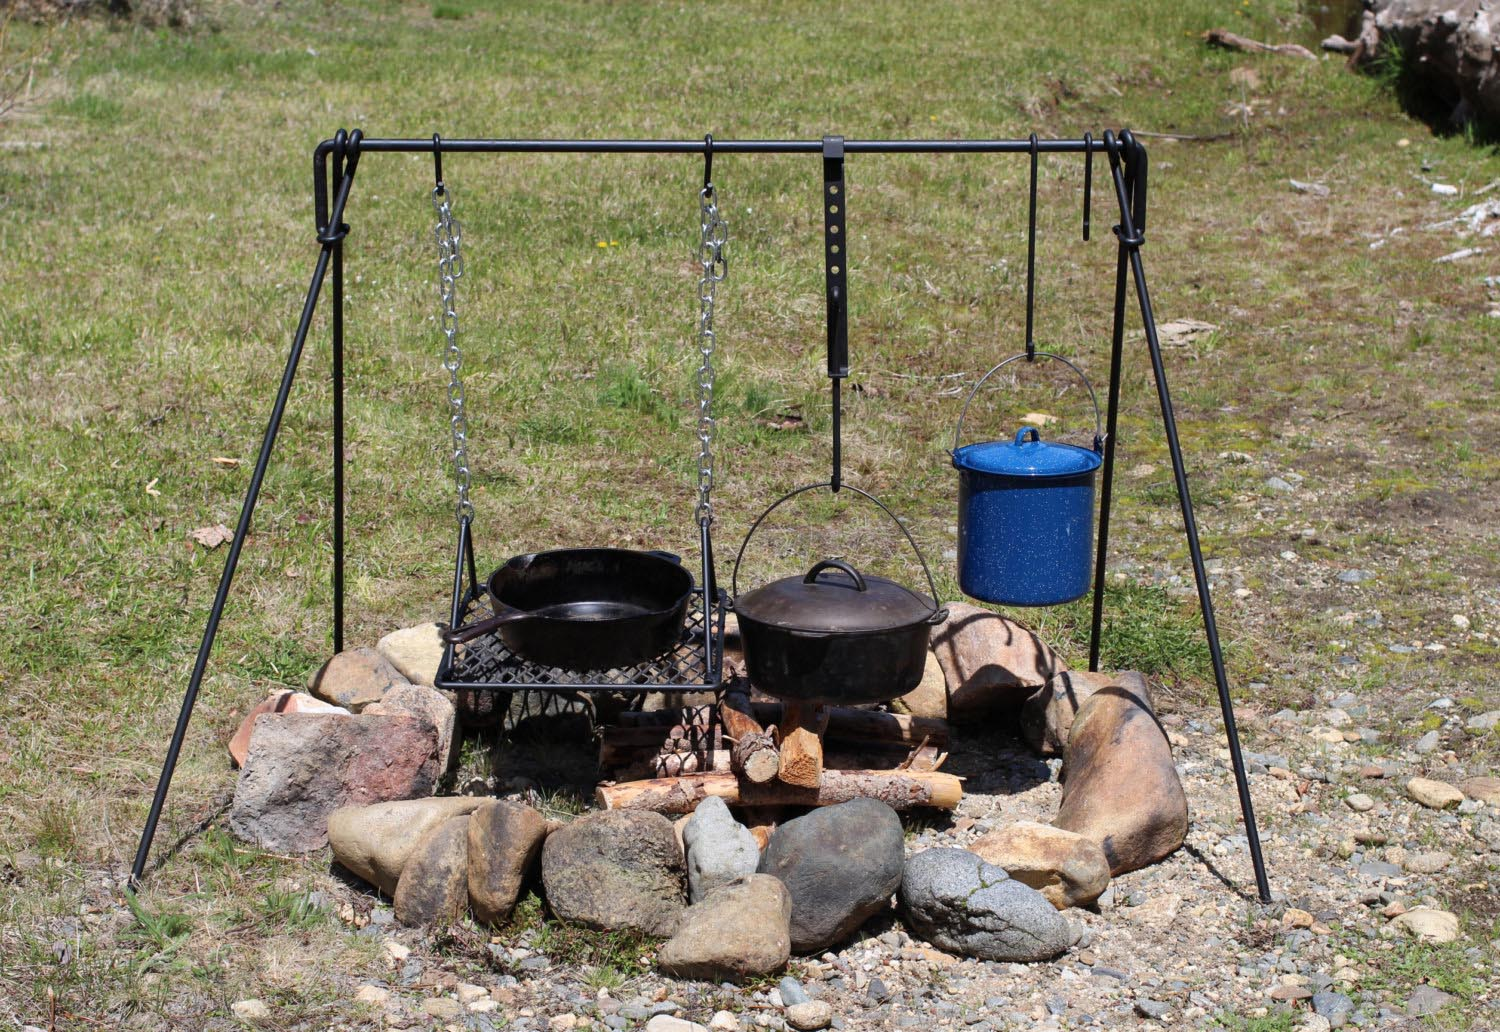 Fire pit cooking tripod fire pit design ideas for Diy cooking